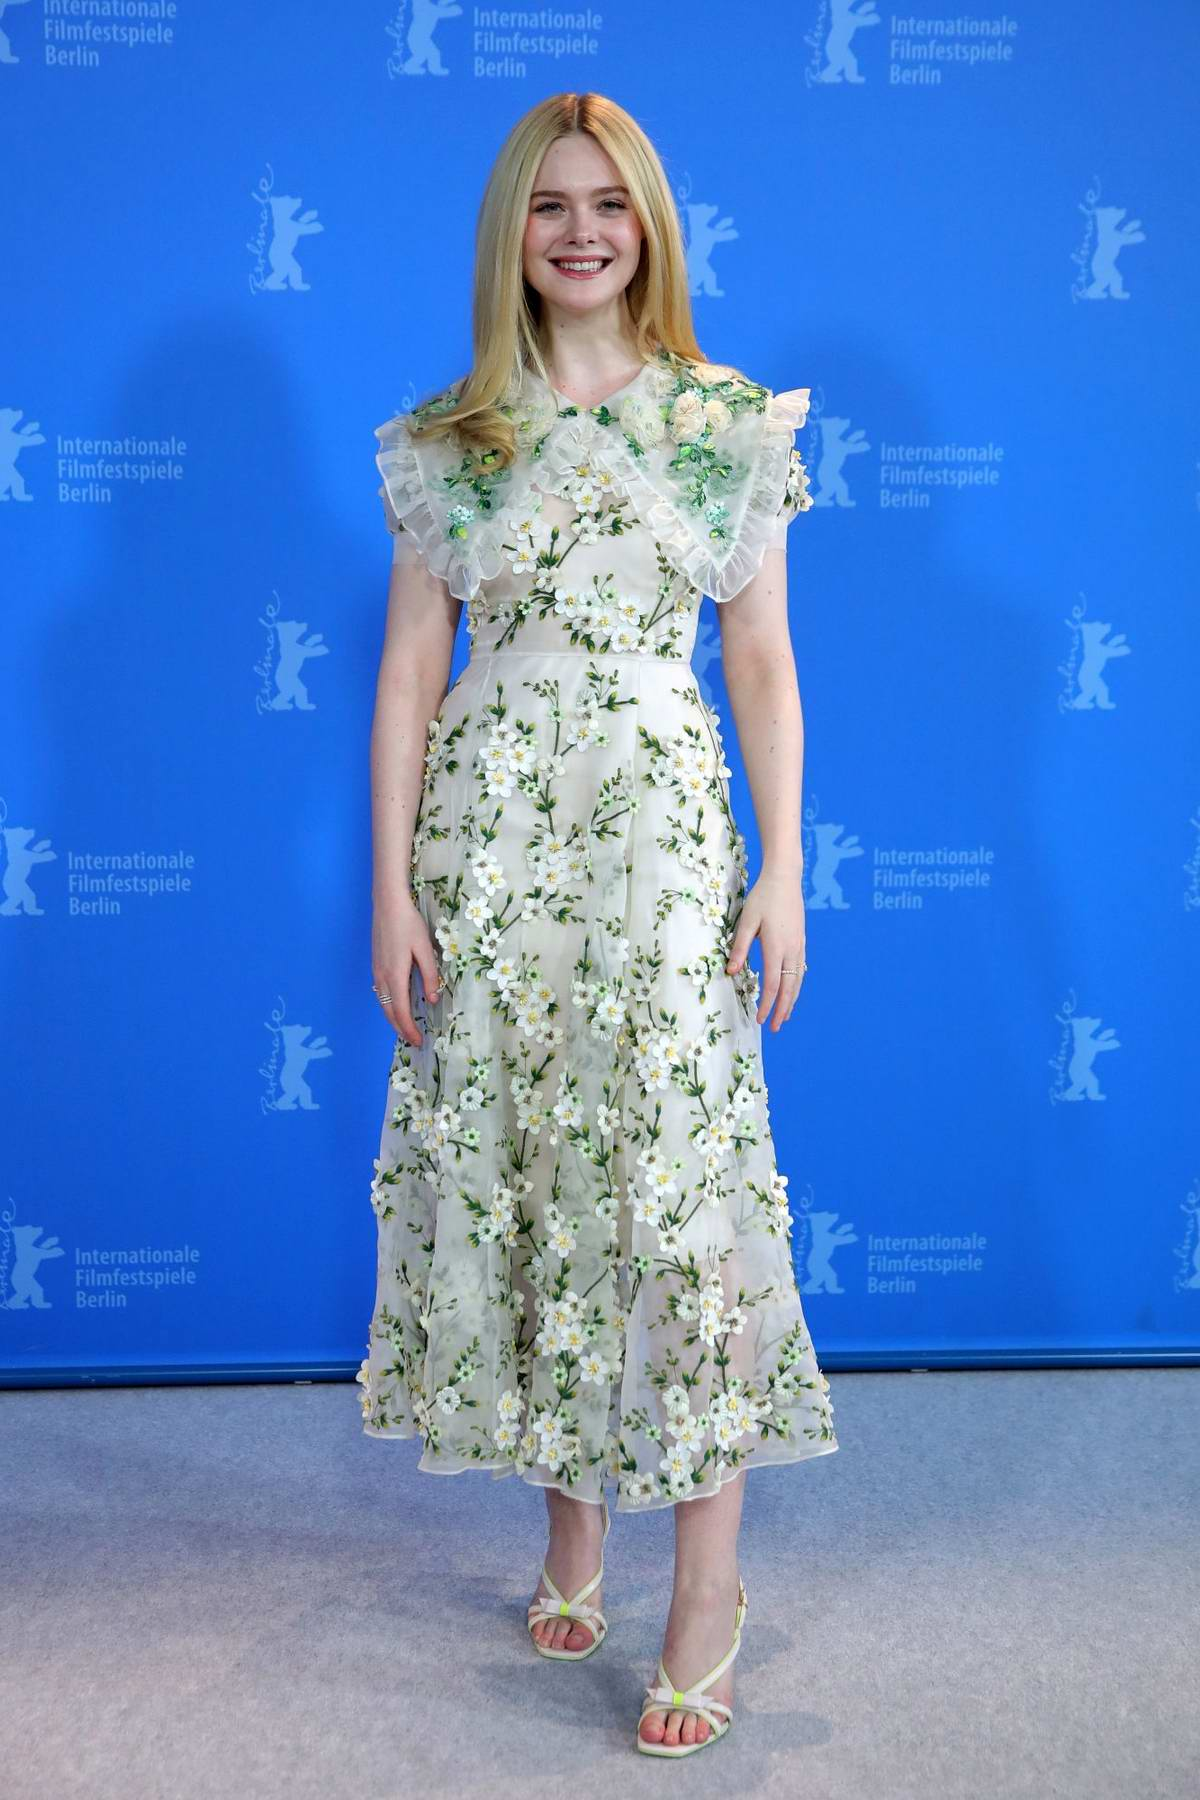 Elle Fanning attends a photocall and press conference for 'The Roads Not Taken' during 70th Berlinale film festival in Berlin, Germany